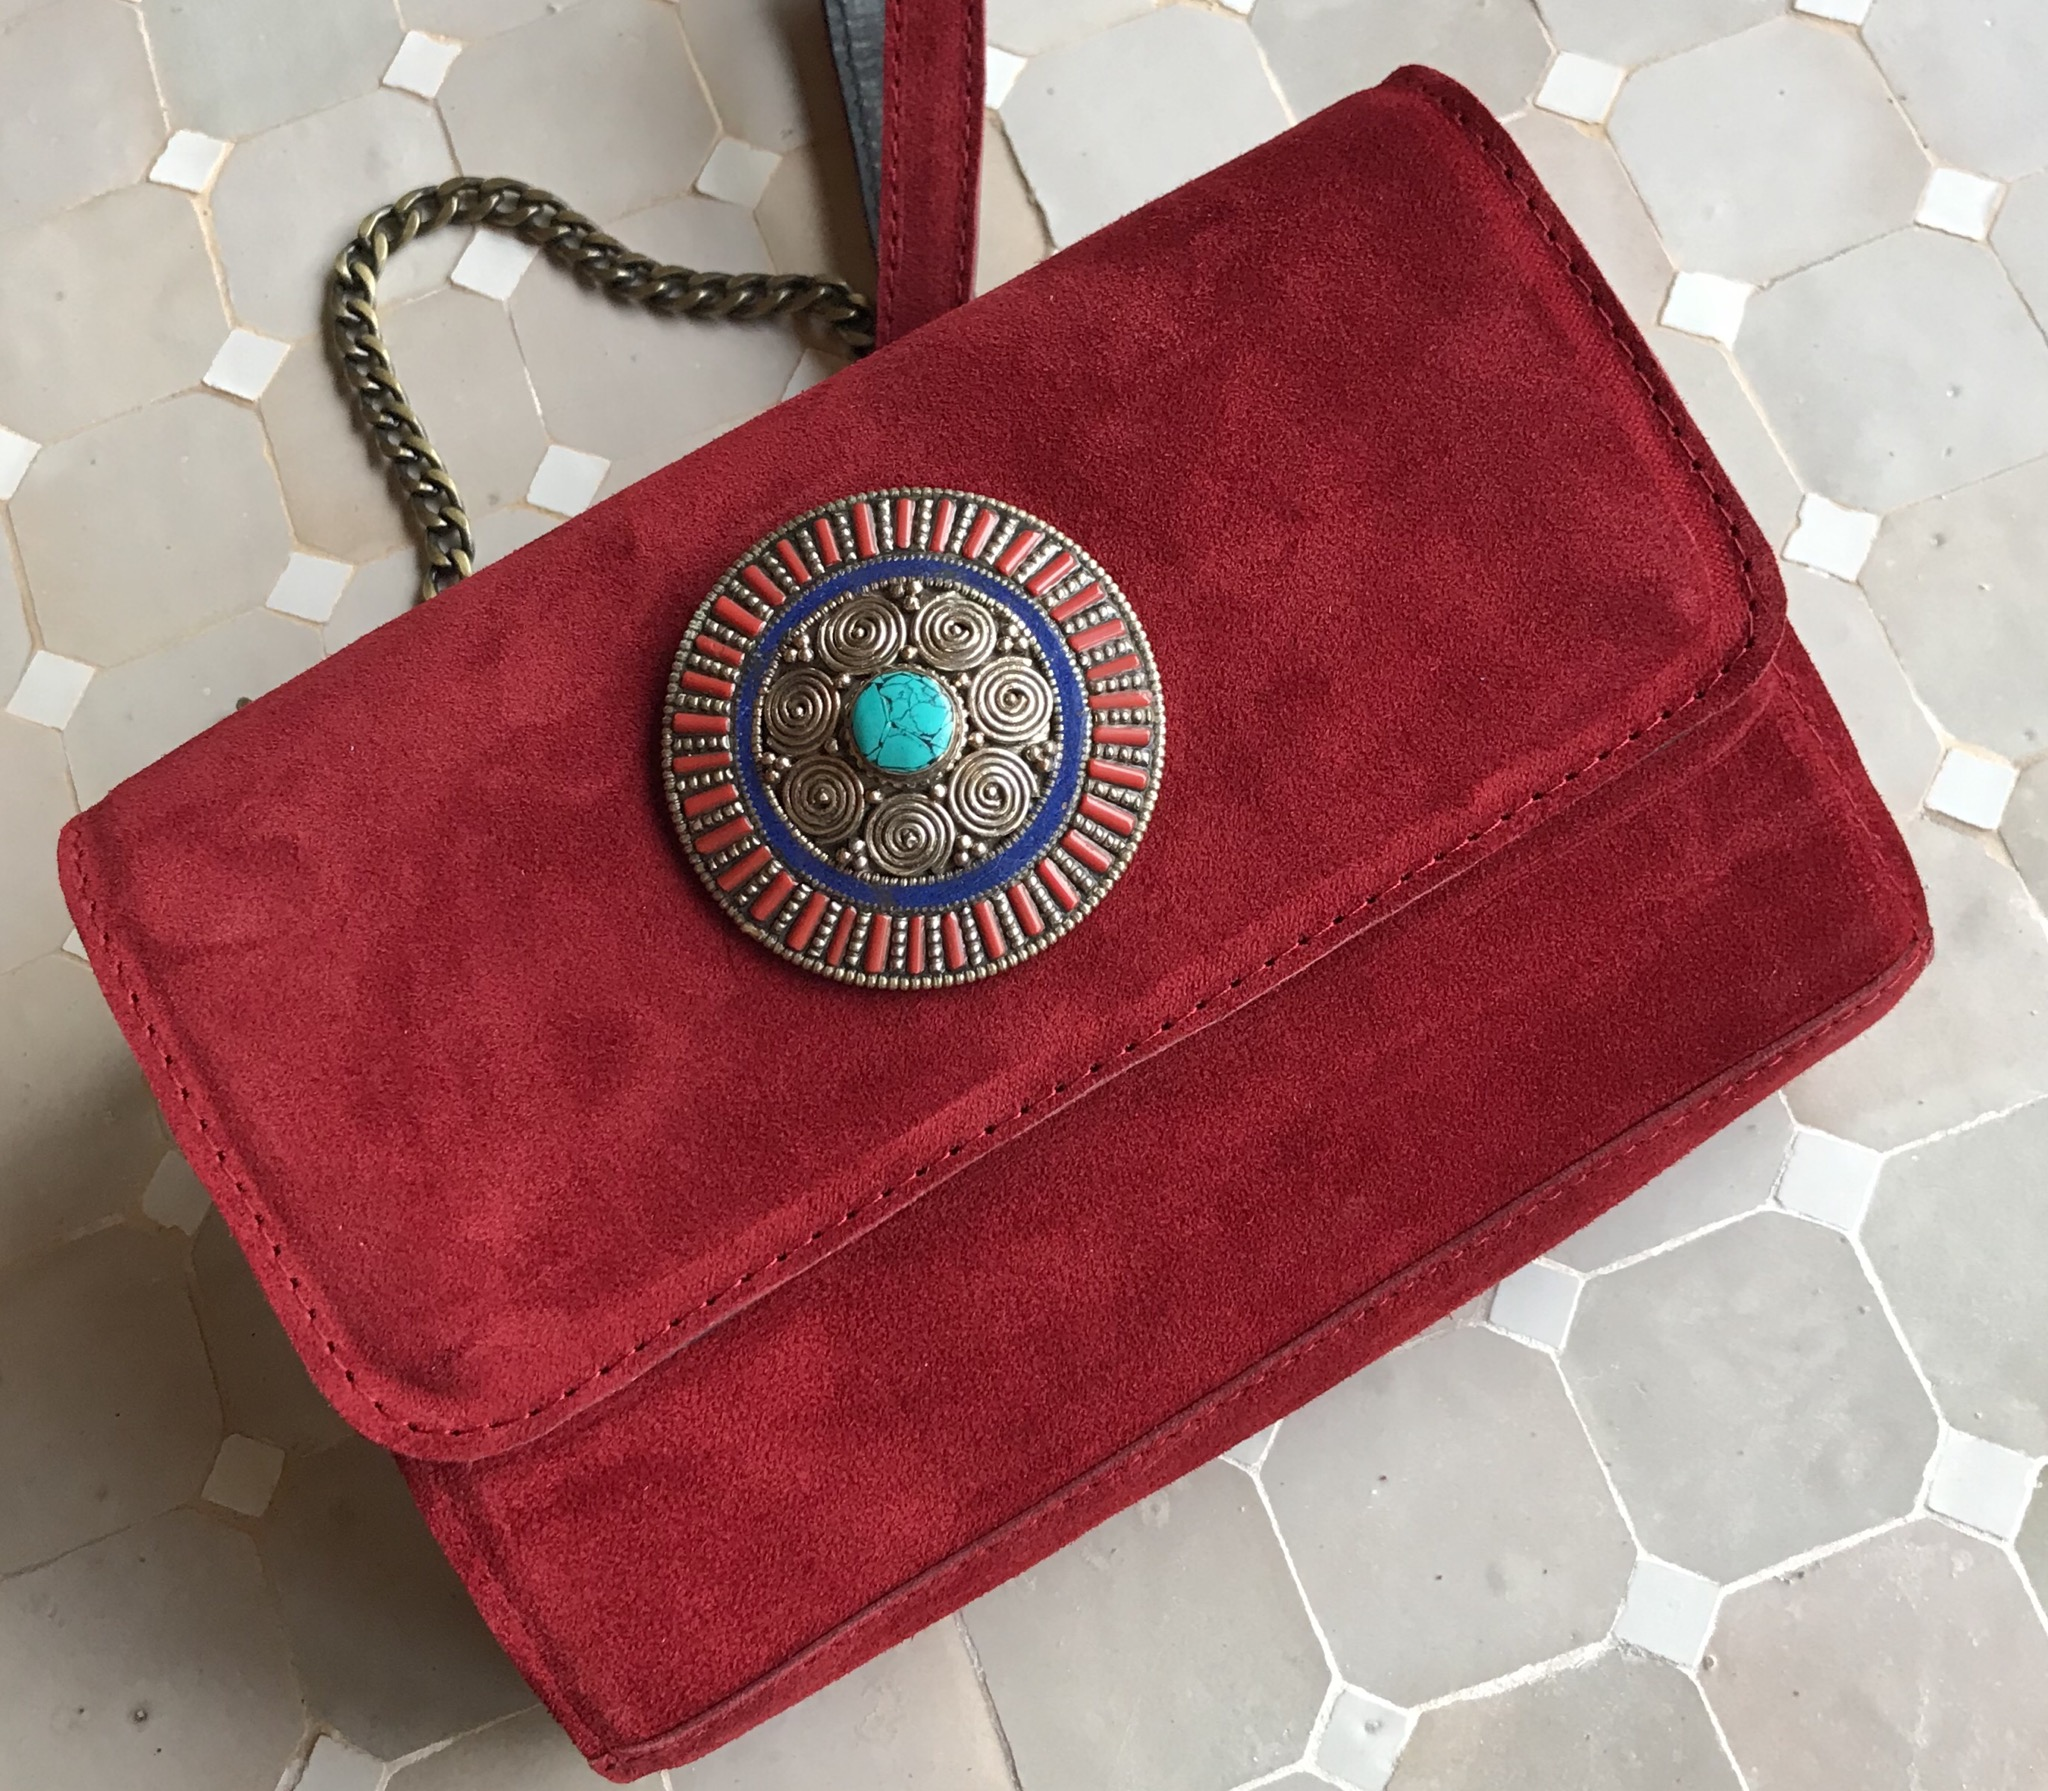 Jewelry bag suede leather red